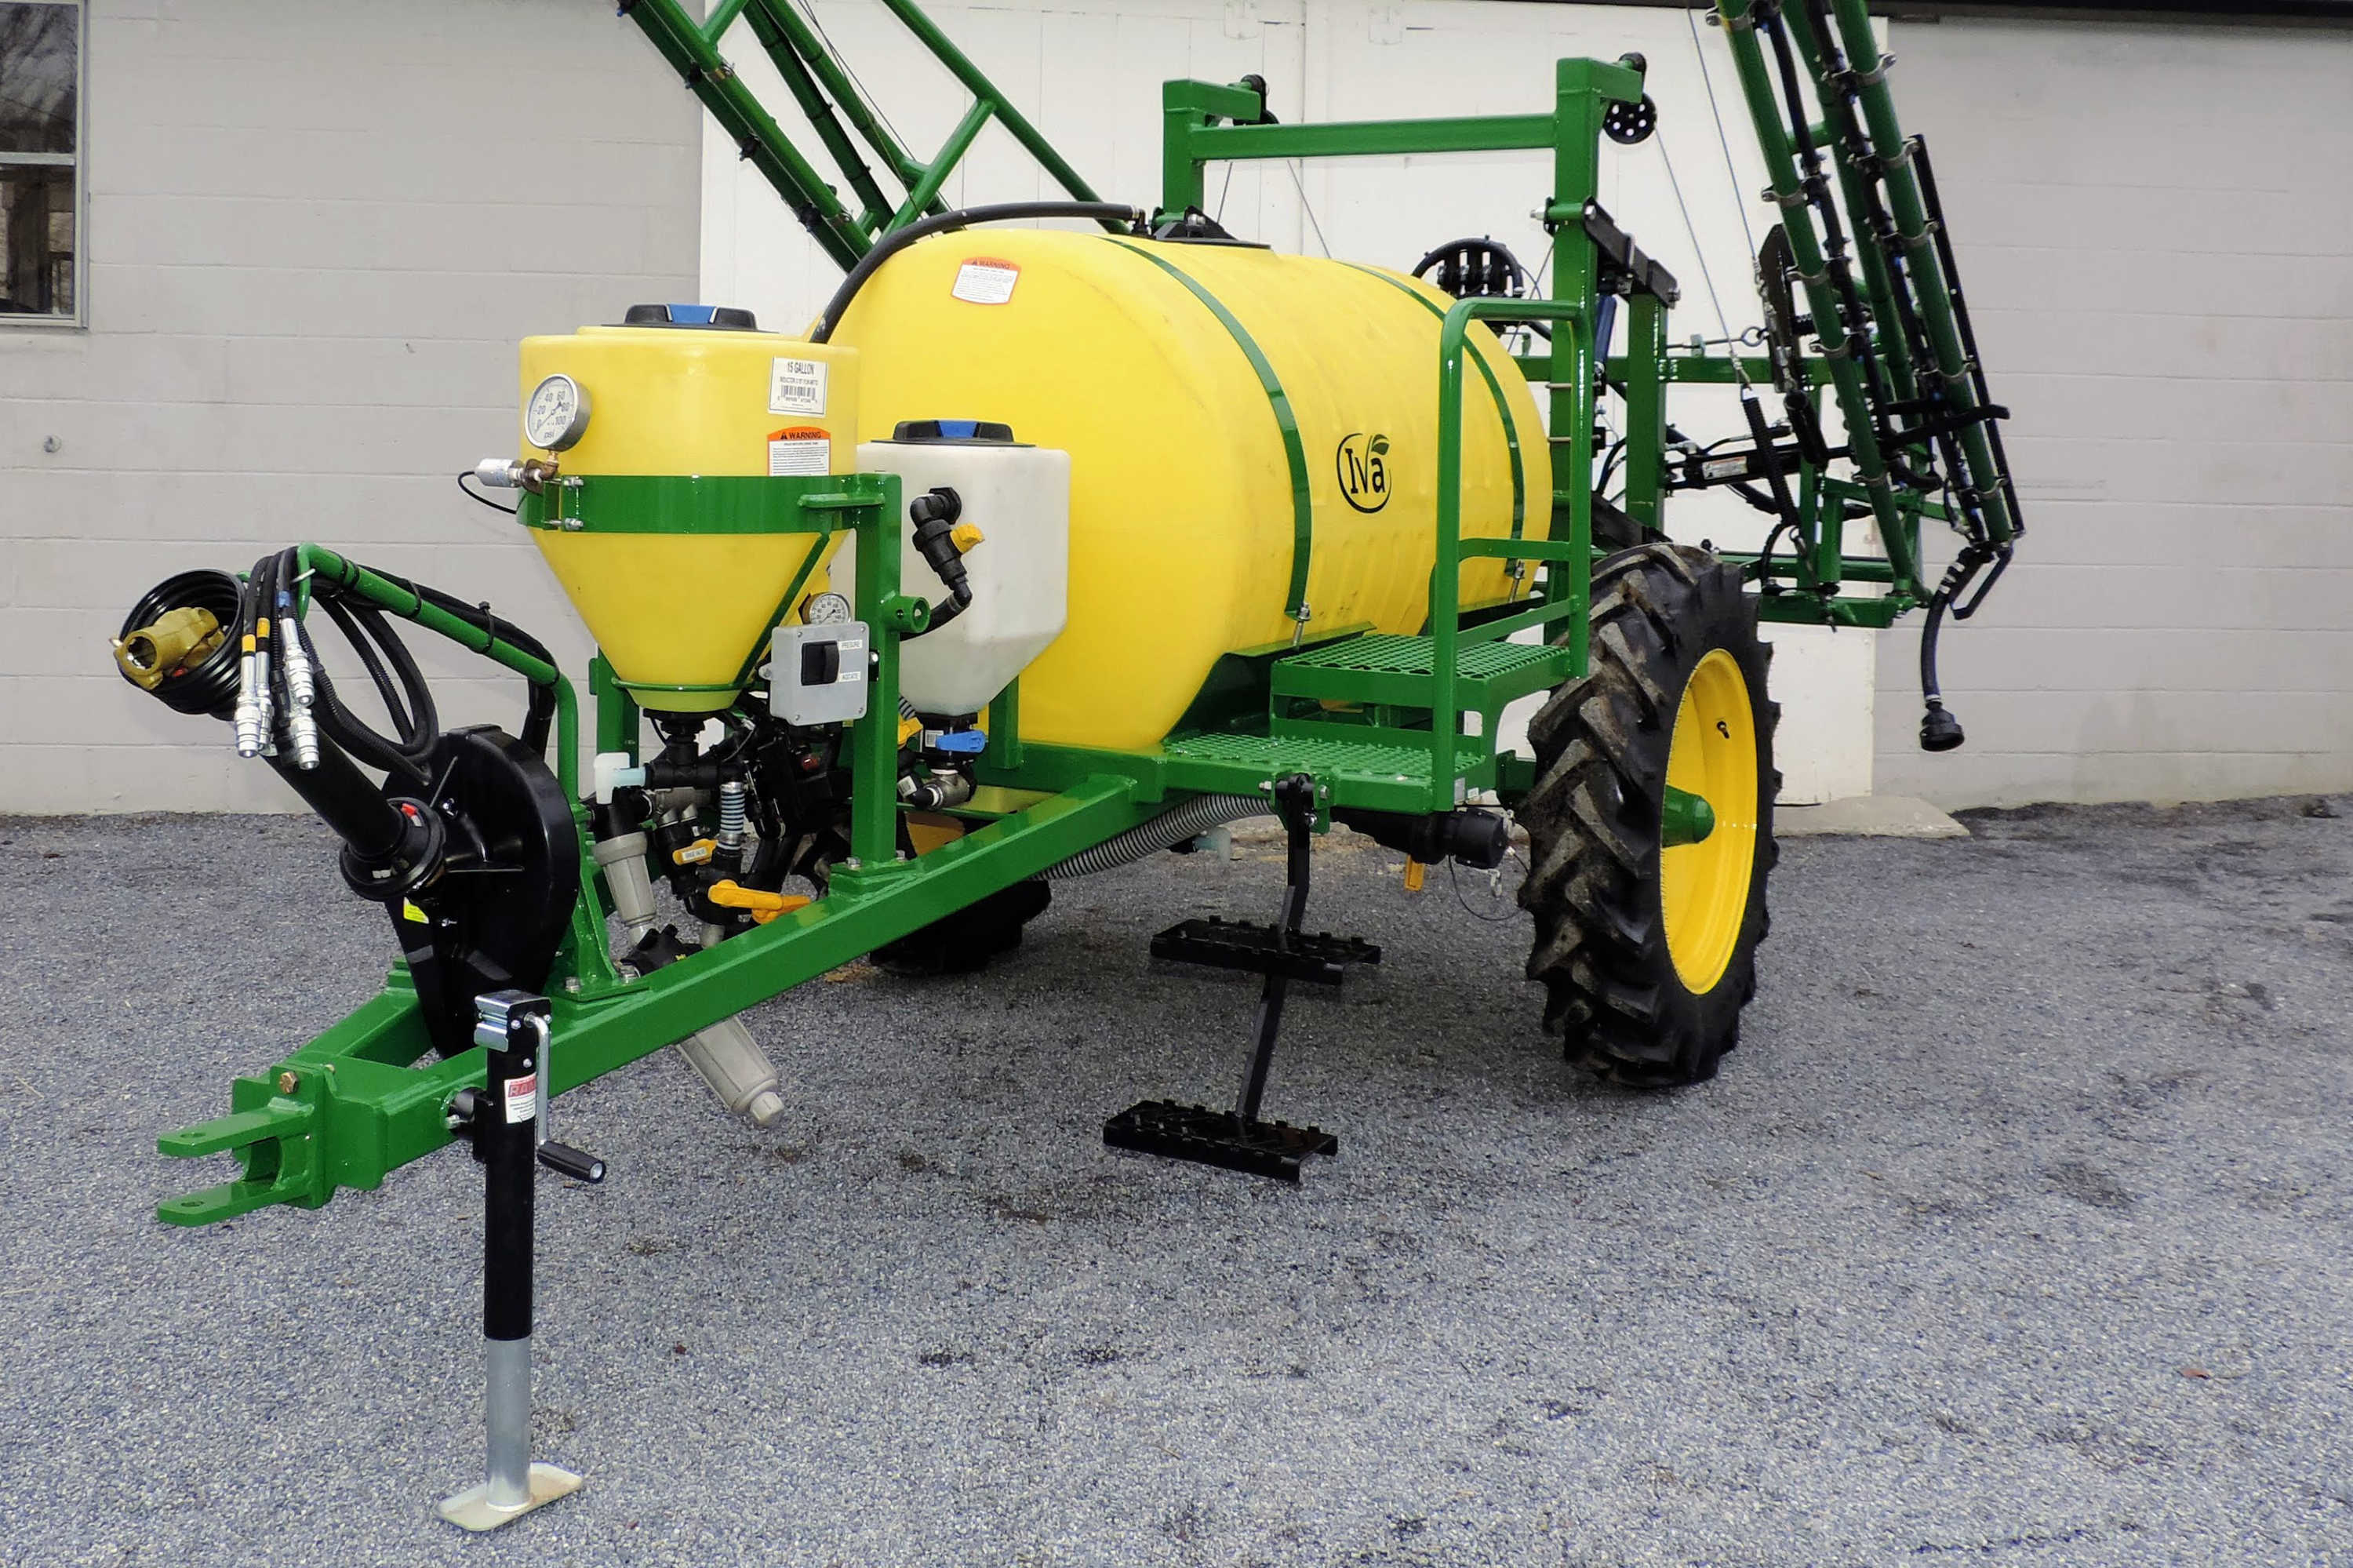 300-gallon Field Sprayer with PTO pump and rinse tank